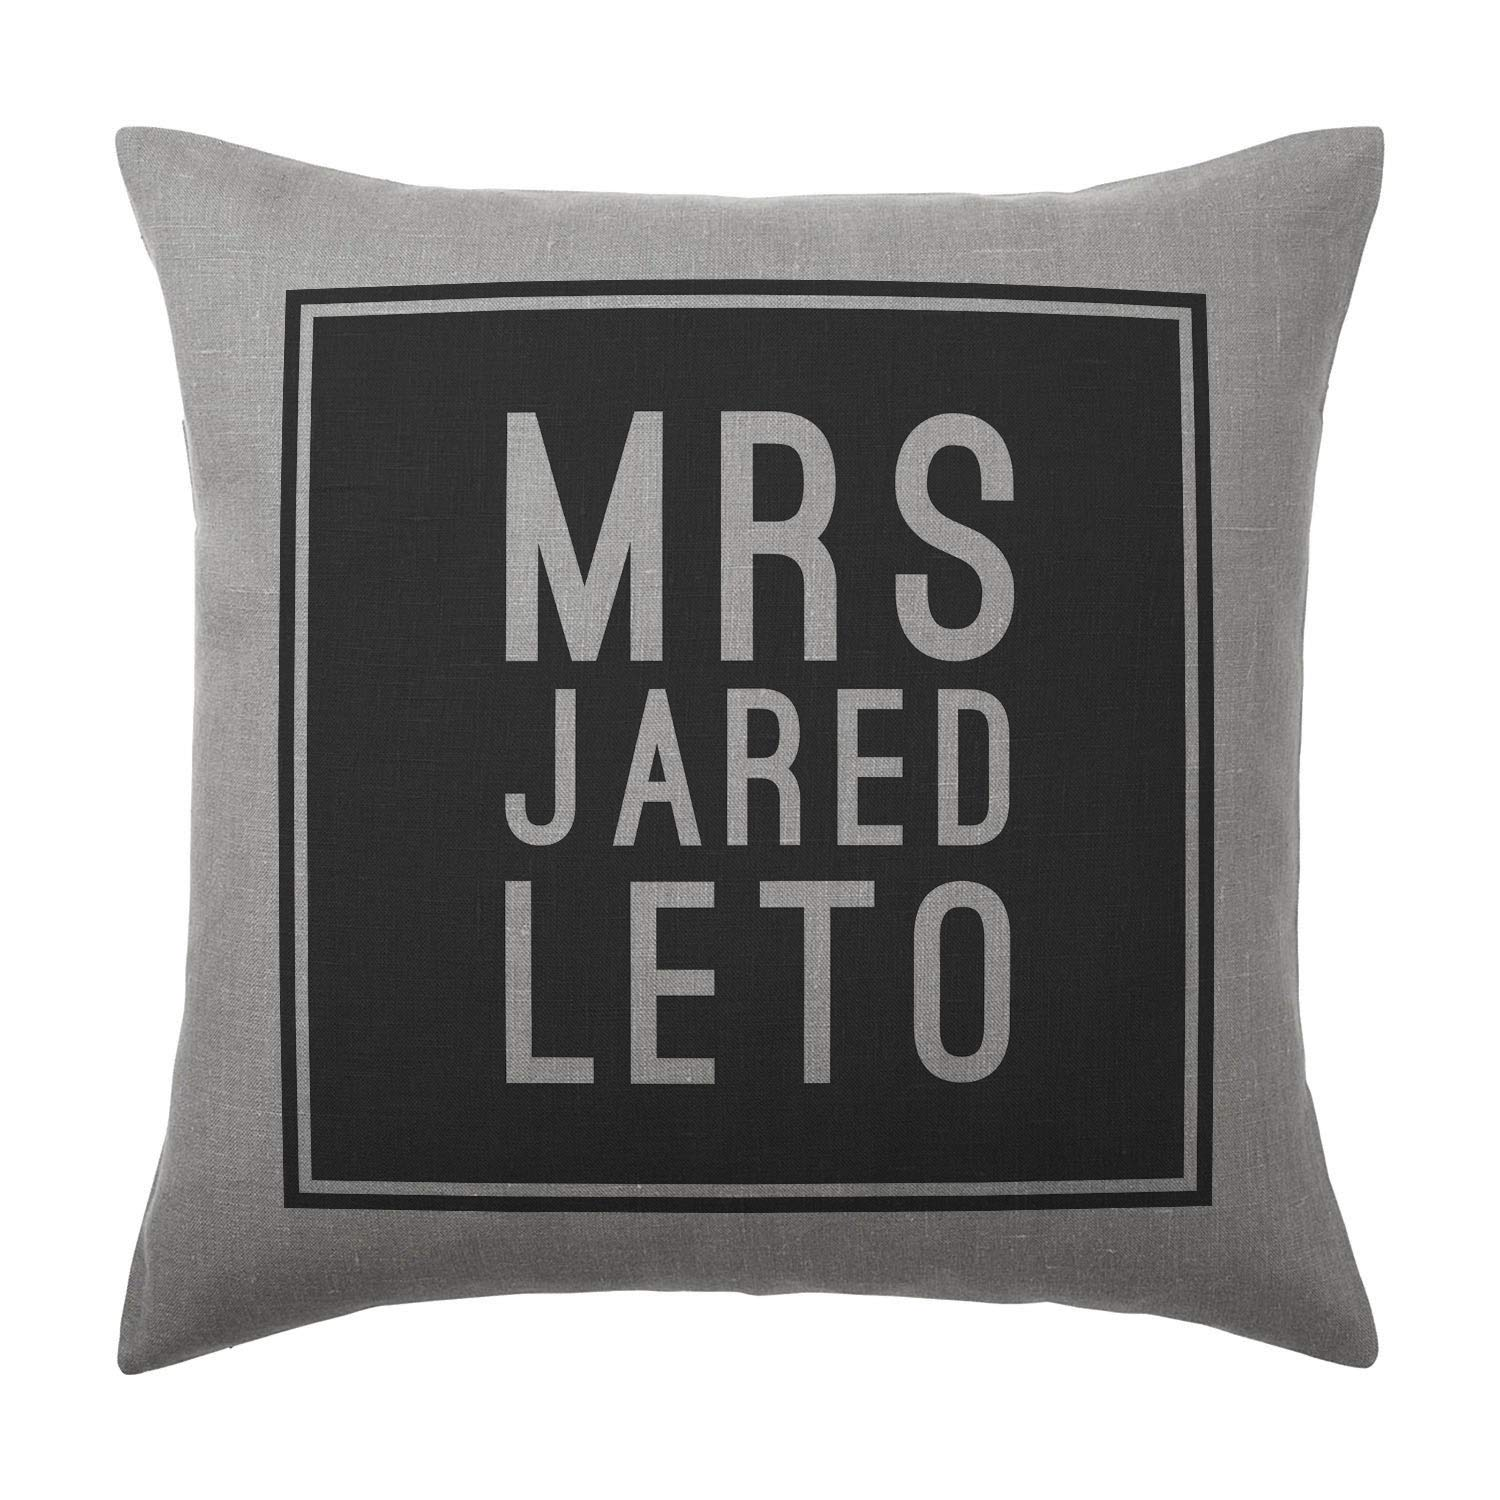 Jared Leto Cushion Pillow - Silver Grey - 100% Cotton - Available with or without filling pad - 40x40cm (Cover and filling pad) The Stocking Fillers